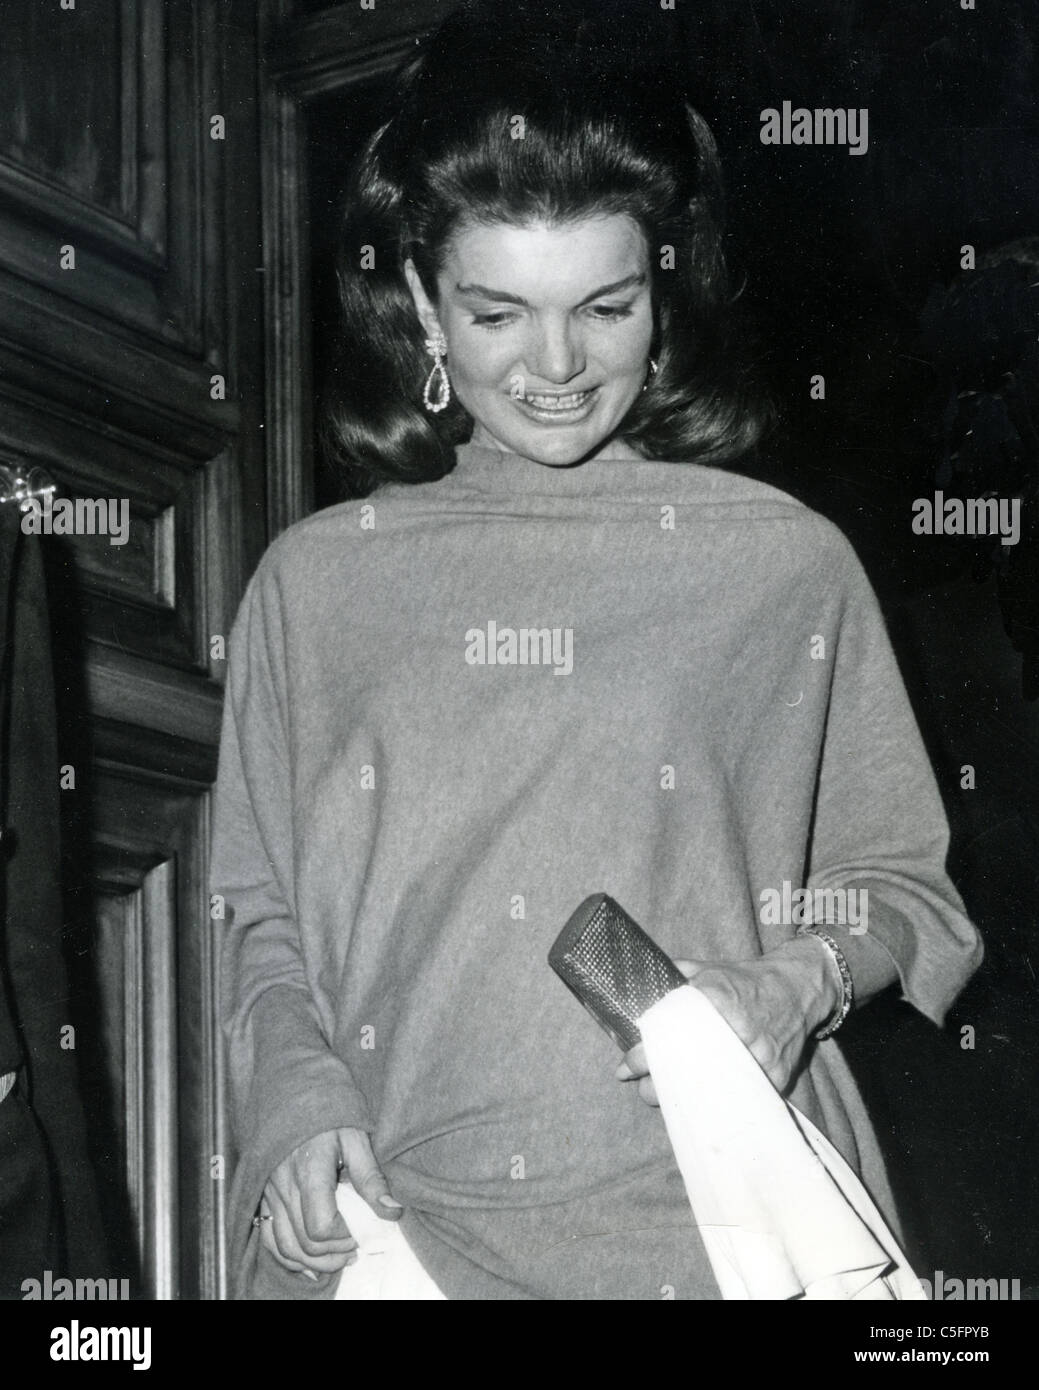 JACQUI KENNEDY ONASSIS (1929-1994) in Rome about 1970 - Stock Image